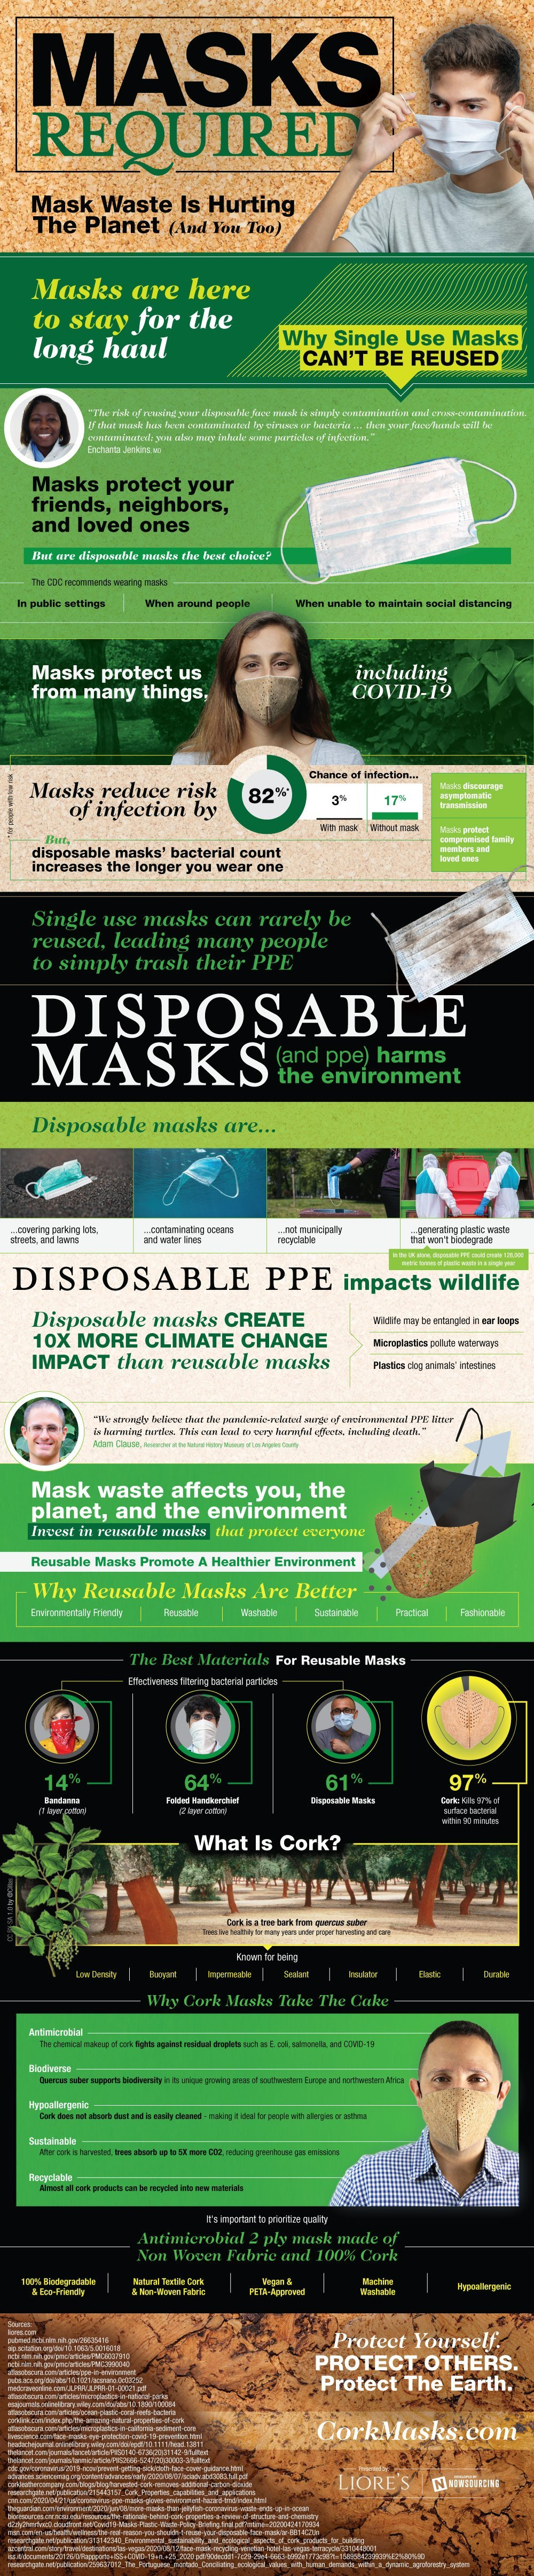 Eco-Friendly Safety From Cork Masks